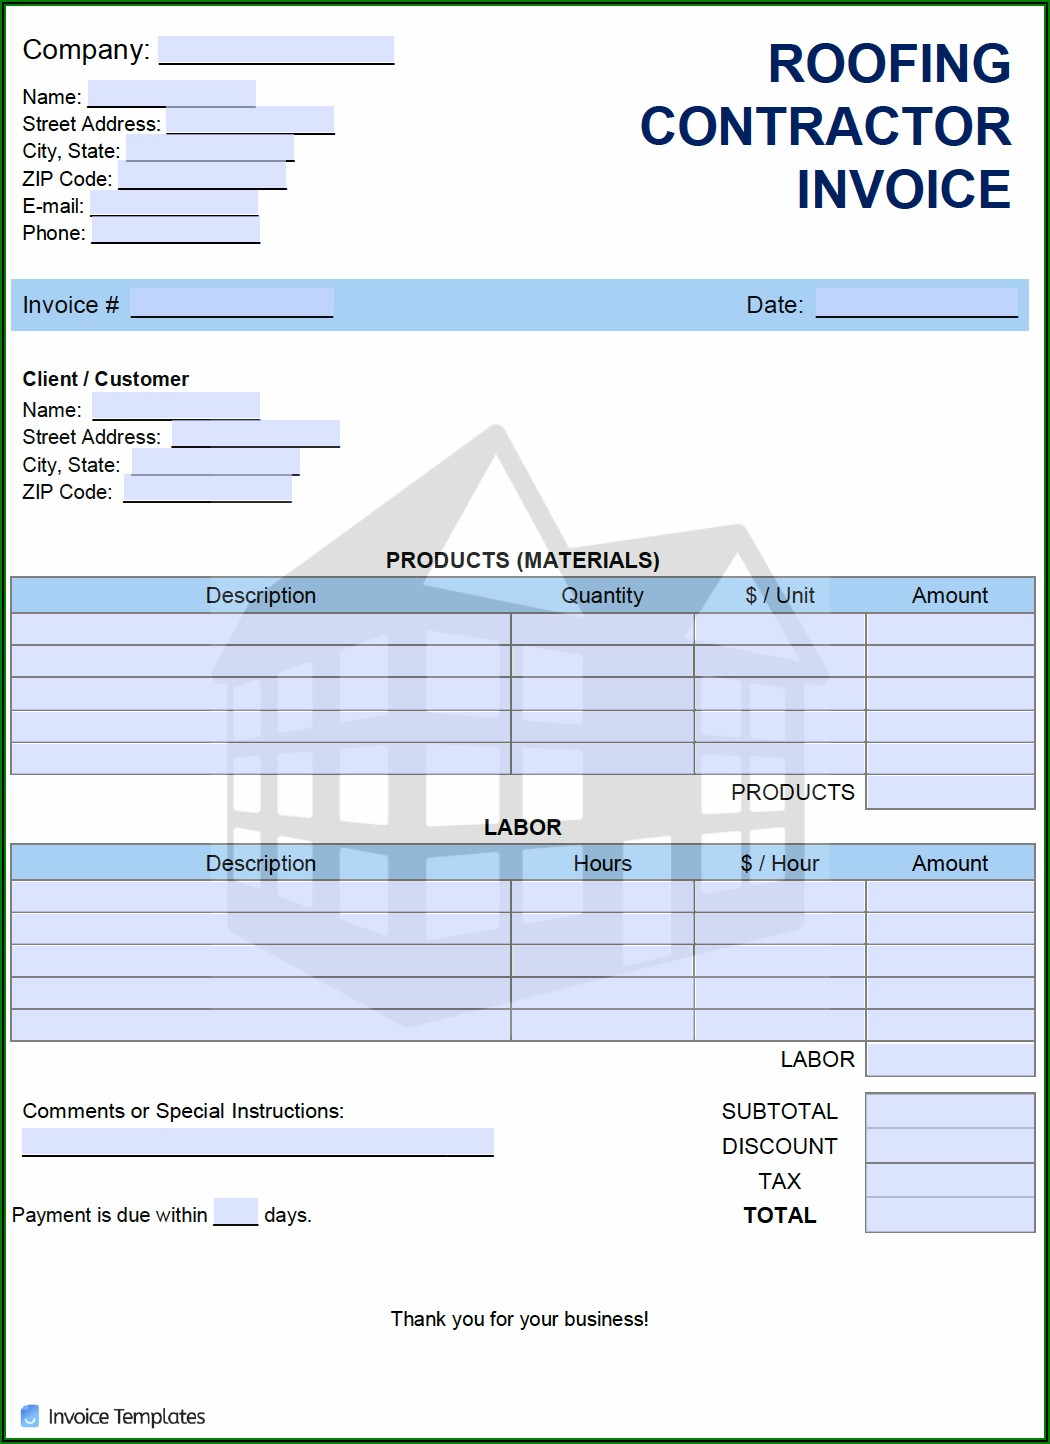 Roofing Invoice Template Excel